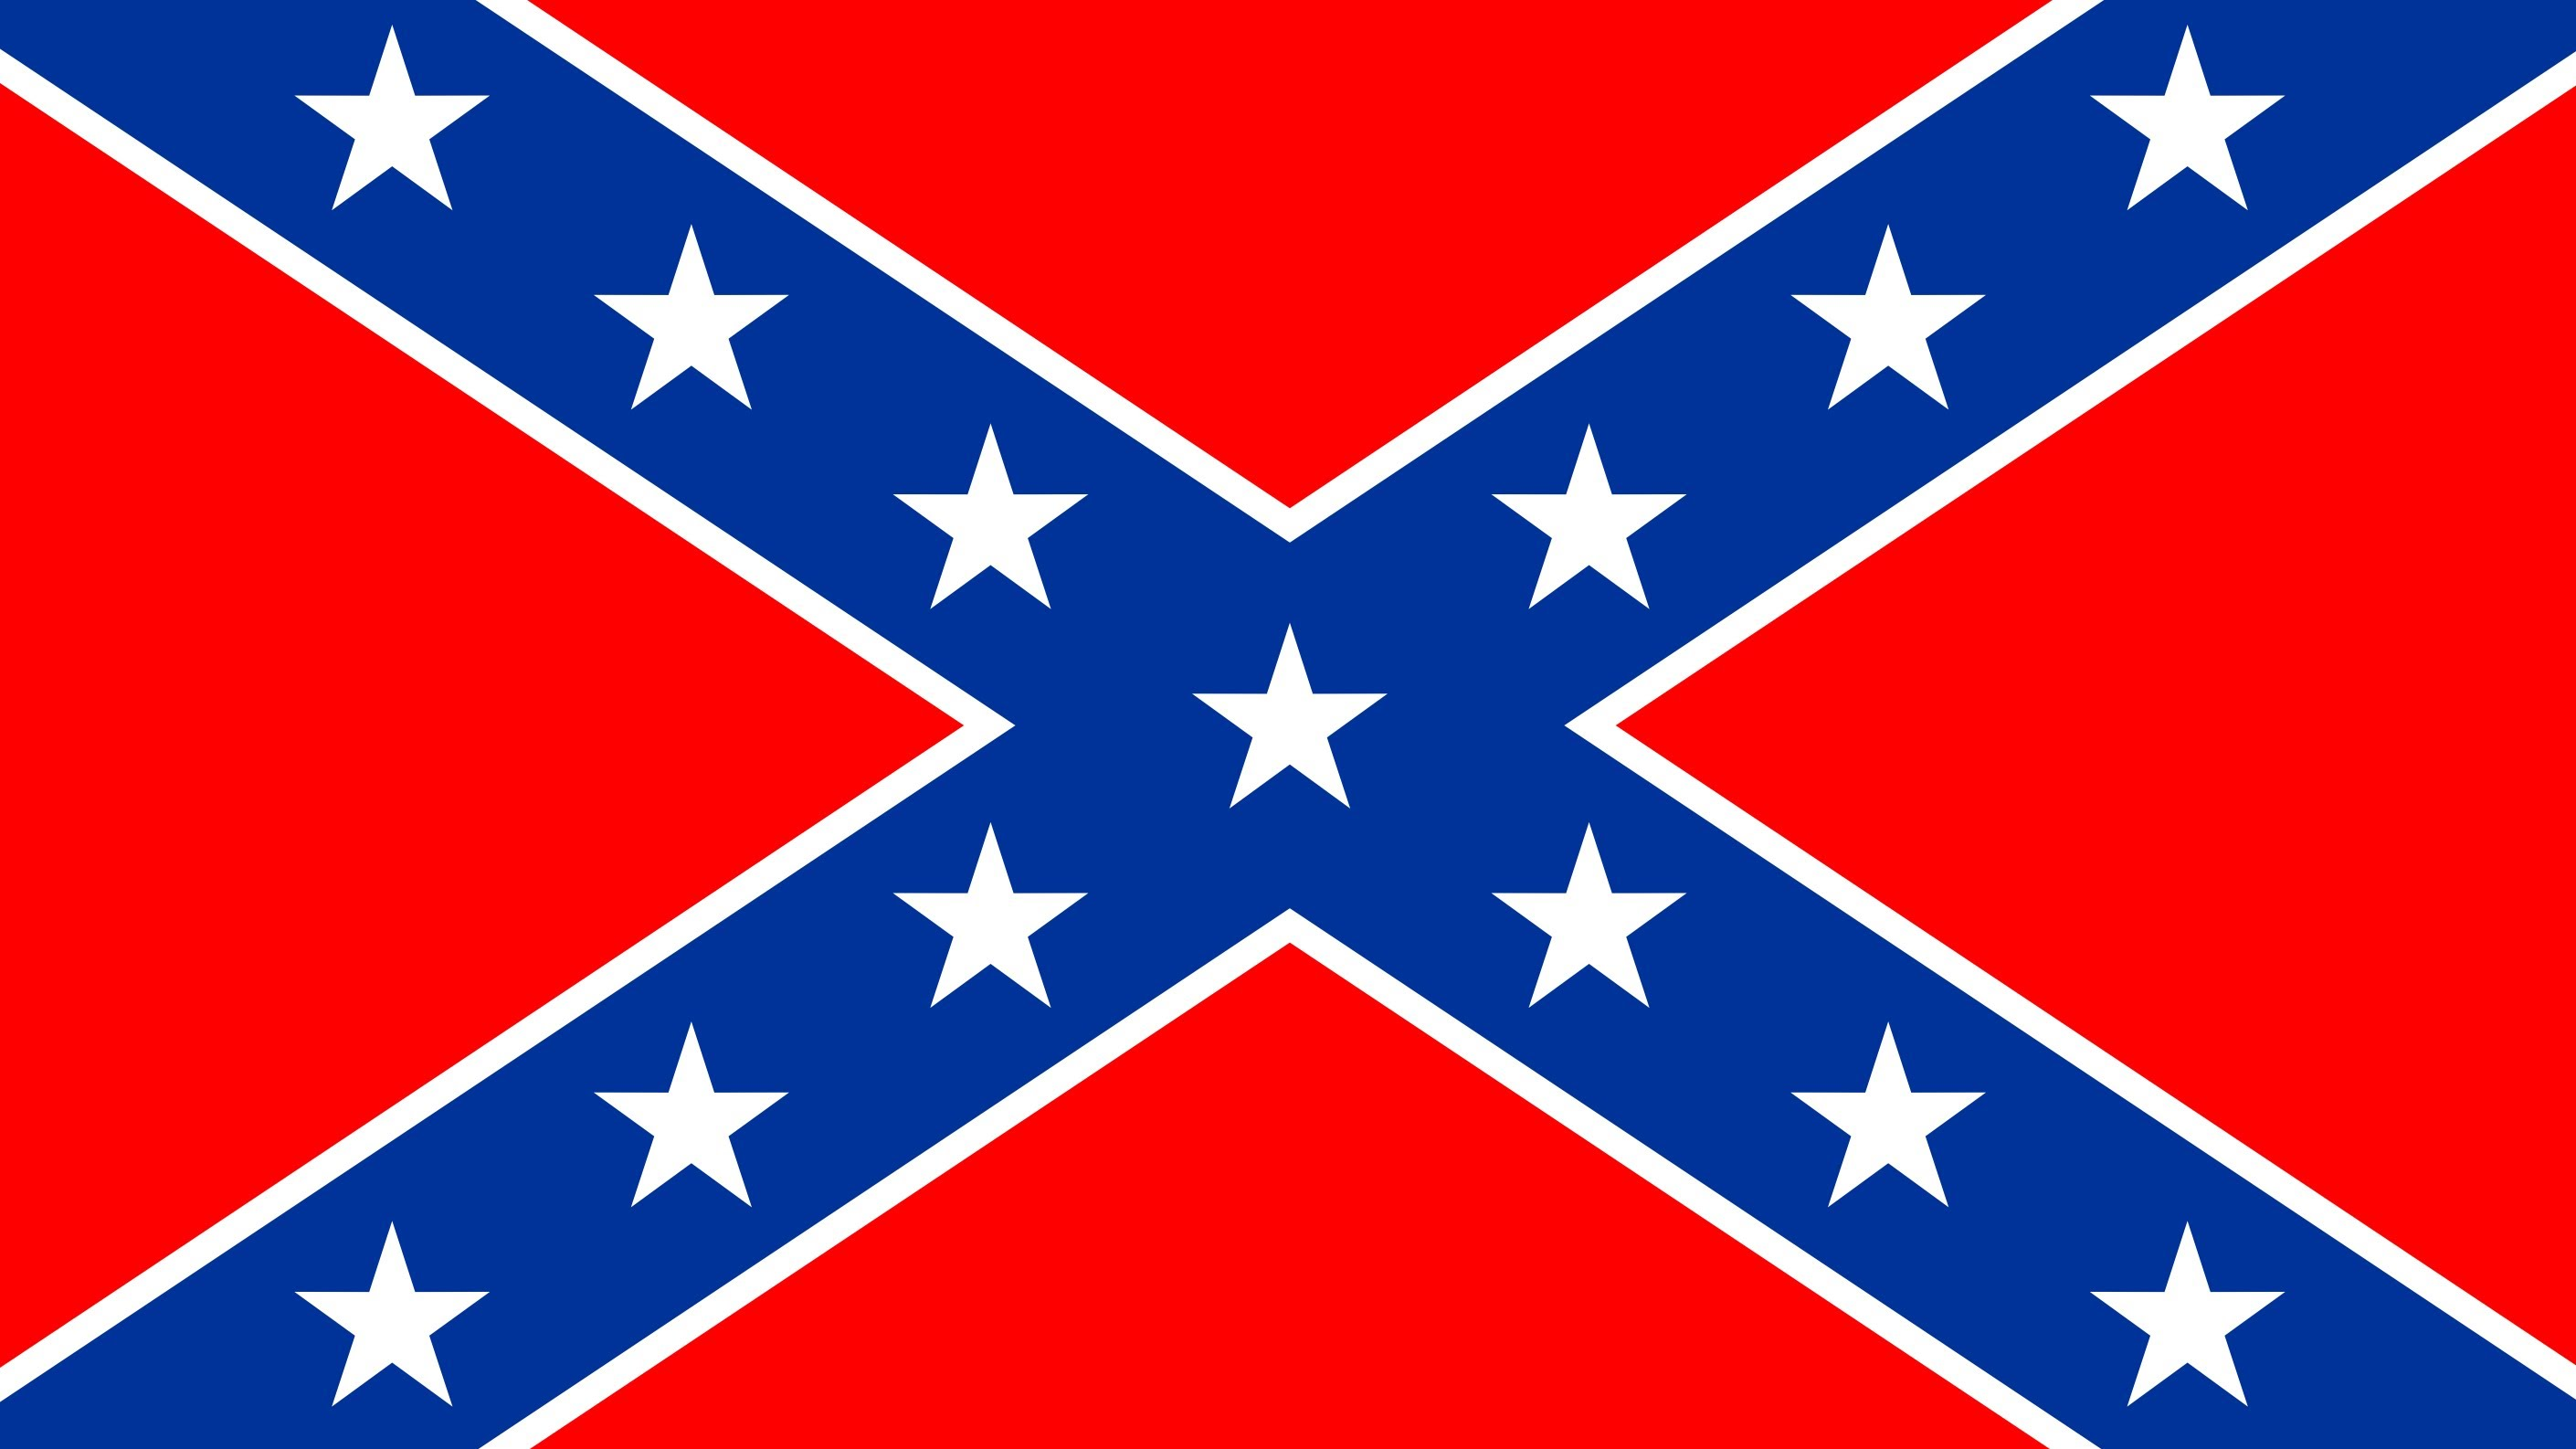 A New Flag for the New South : Minor Thoughts